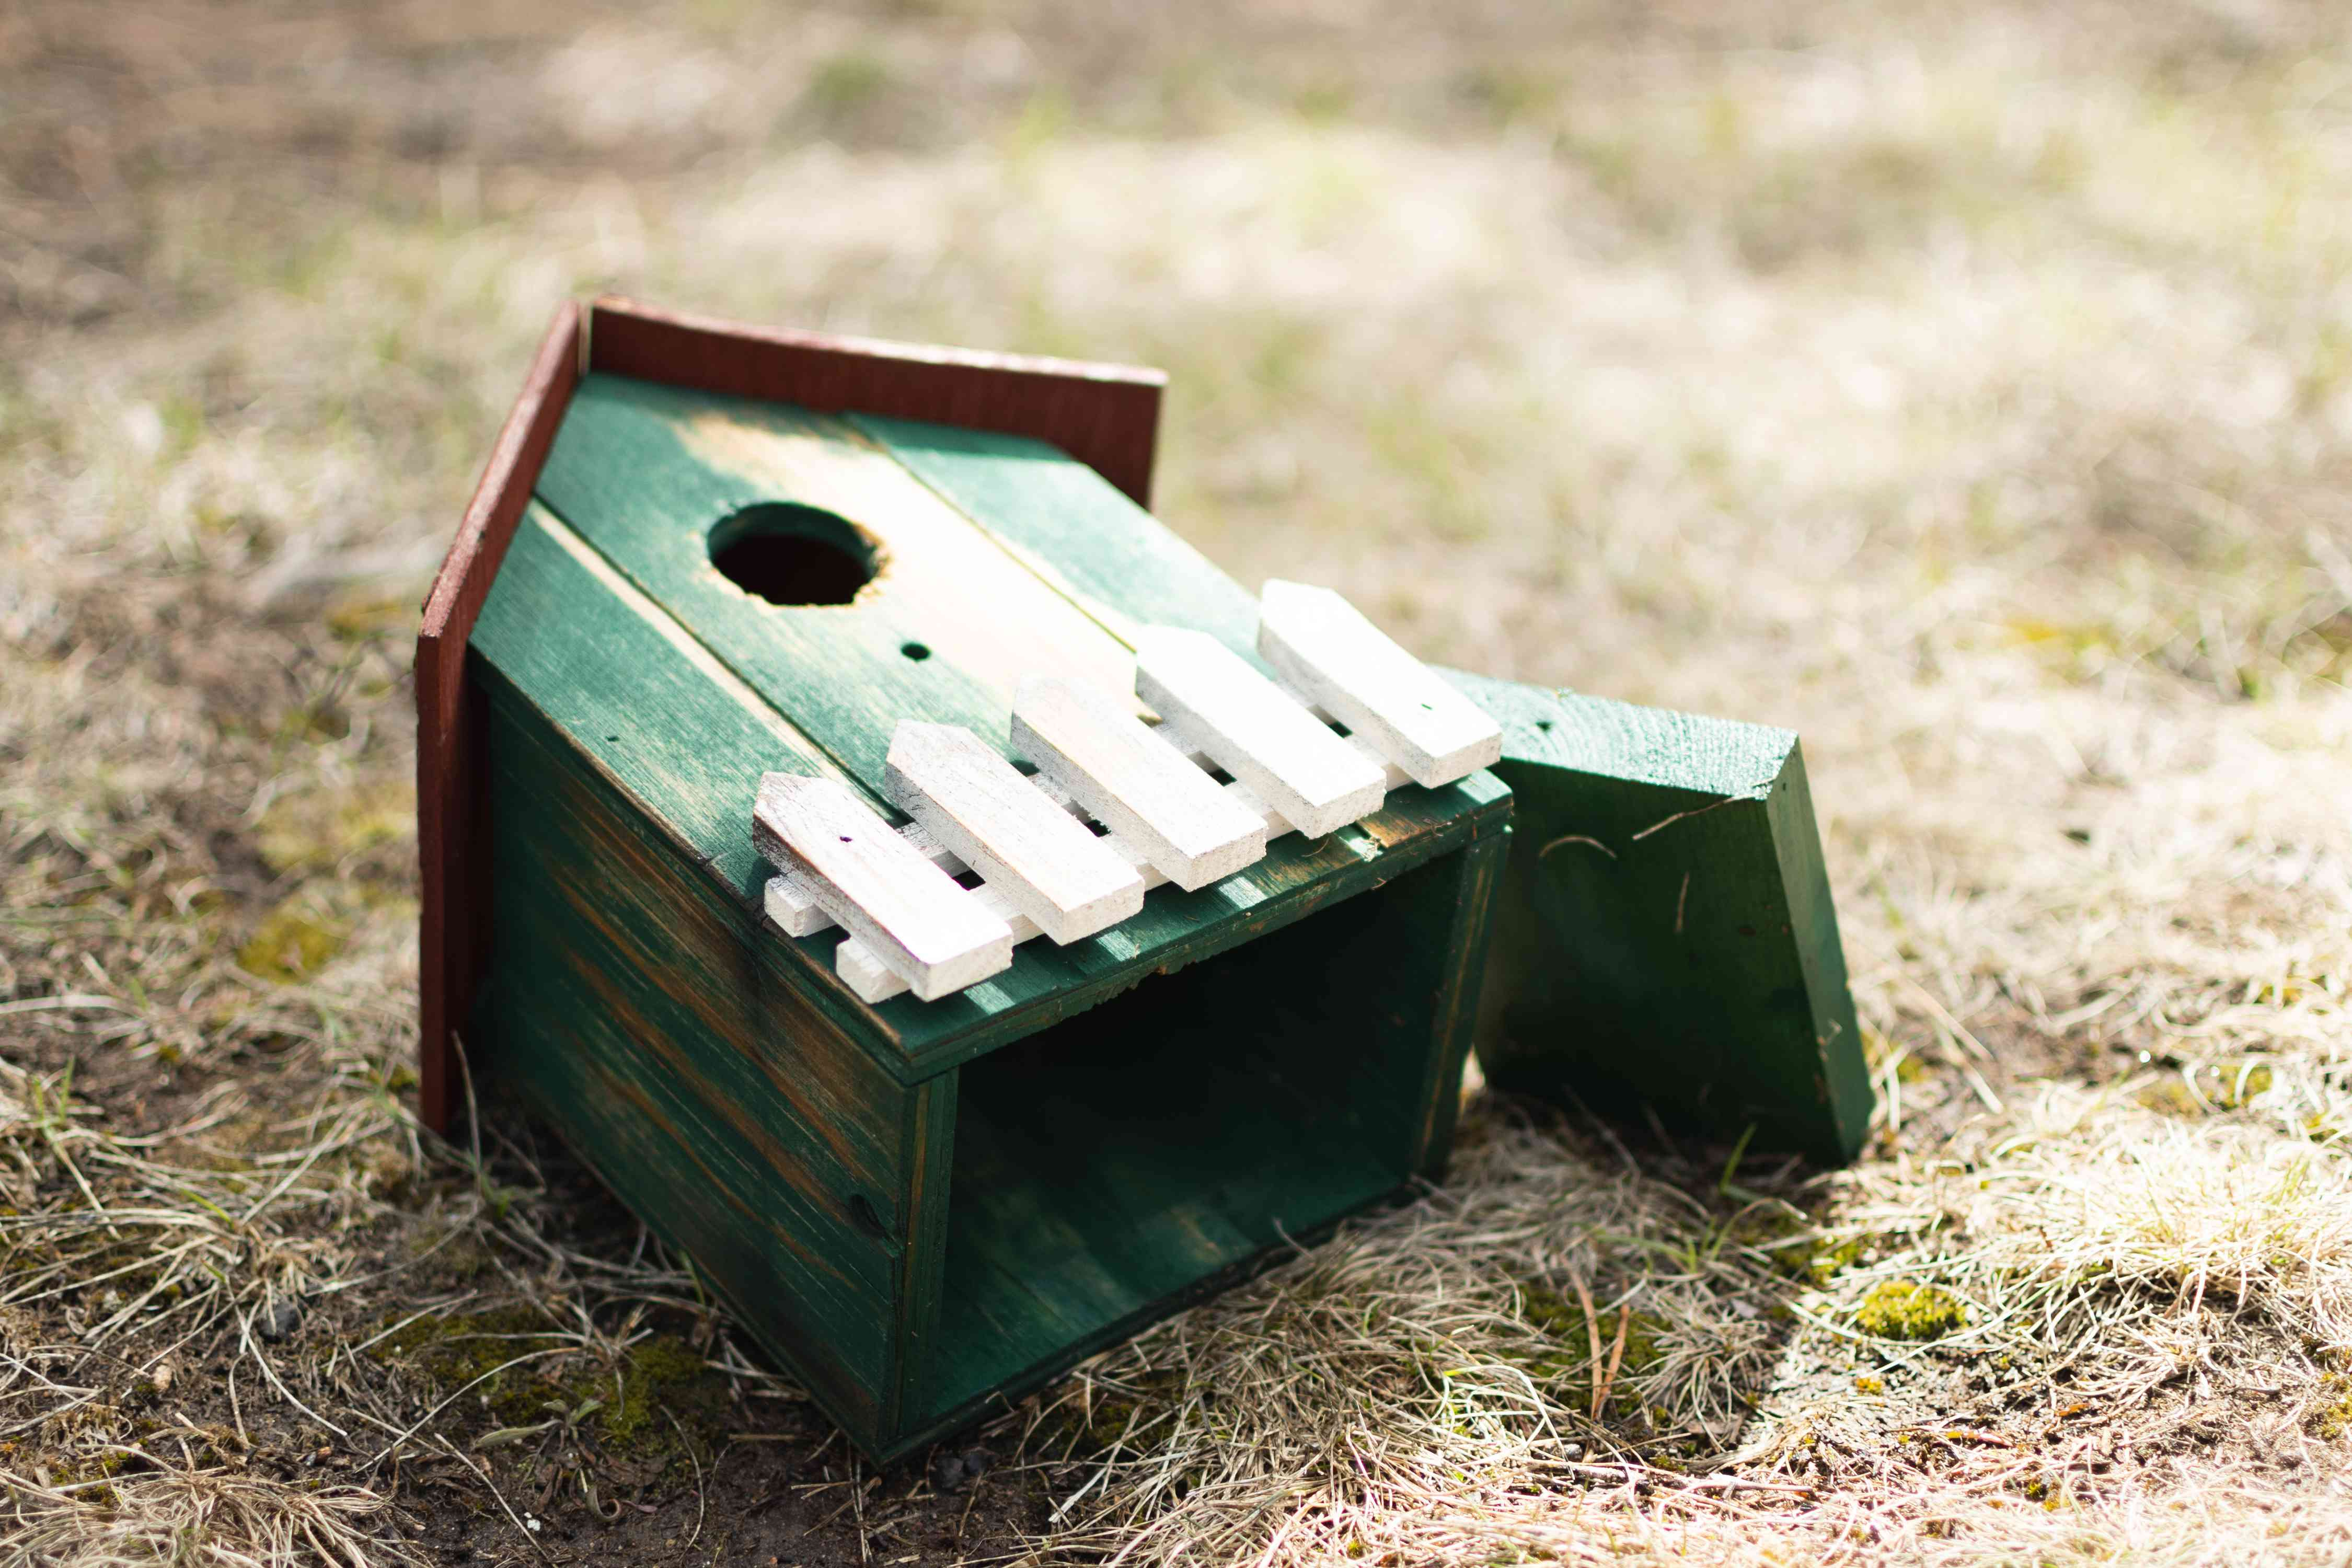 Wooden green birdhouse air drying in full sun on the ground